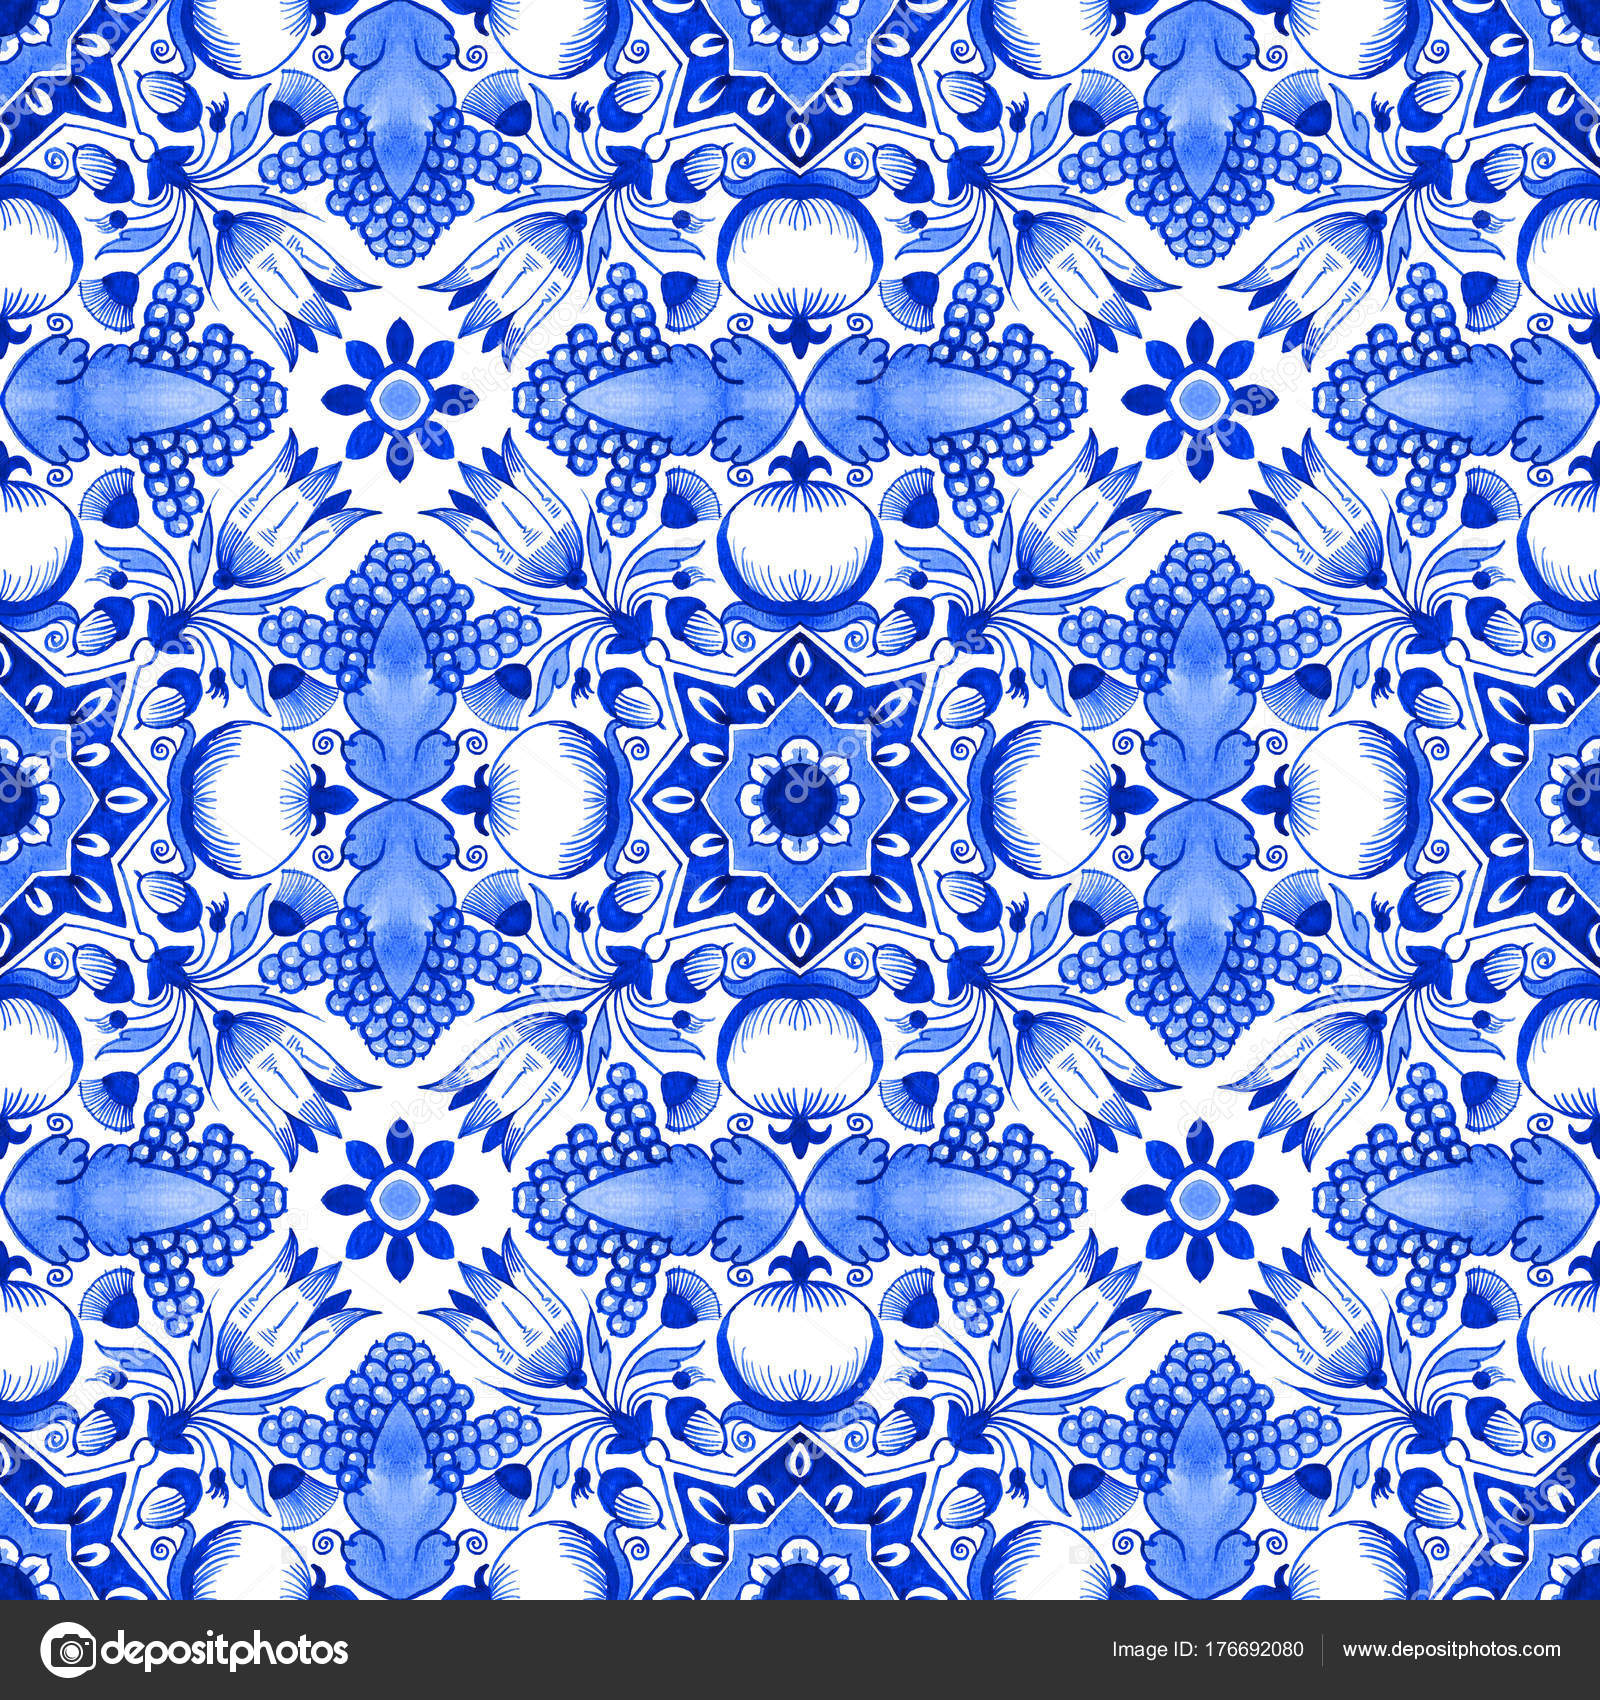 Delft Blue Style Watercolour Seamless Pattern Traditional Dutch Tile ...